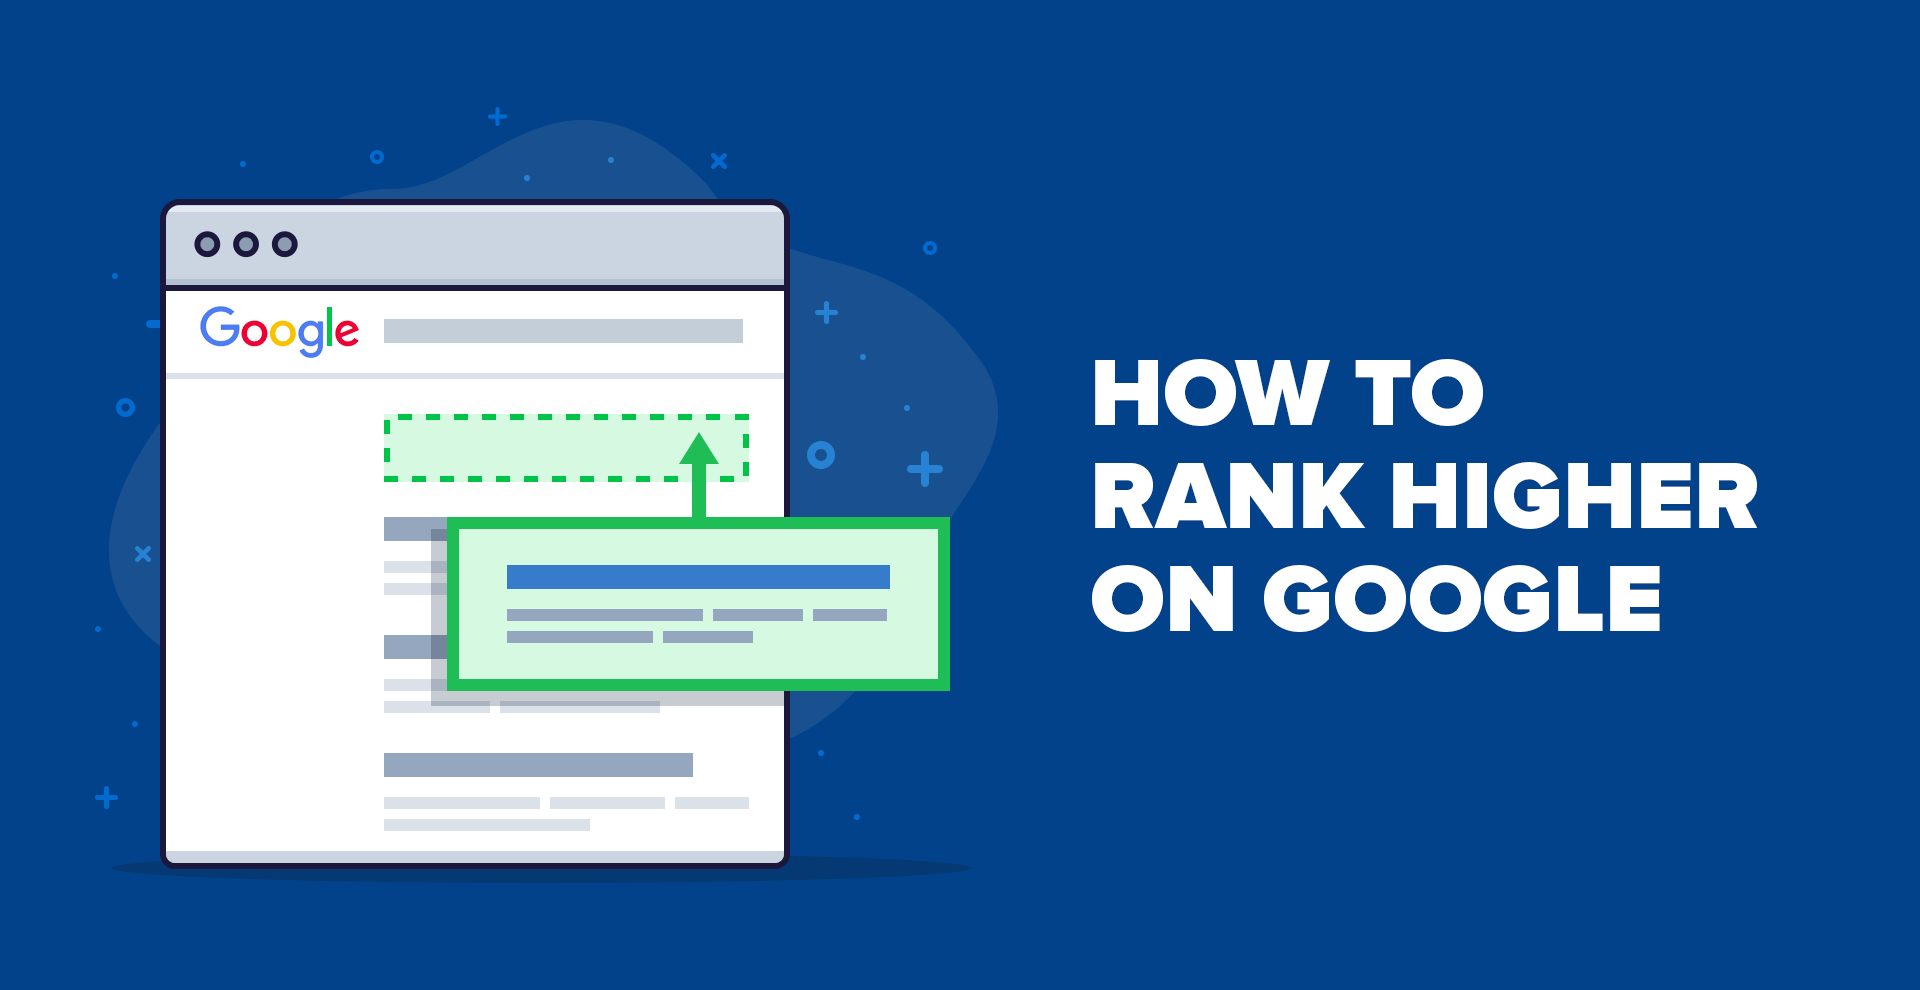 How to Rank Higher?